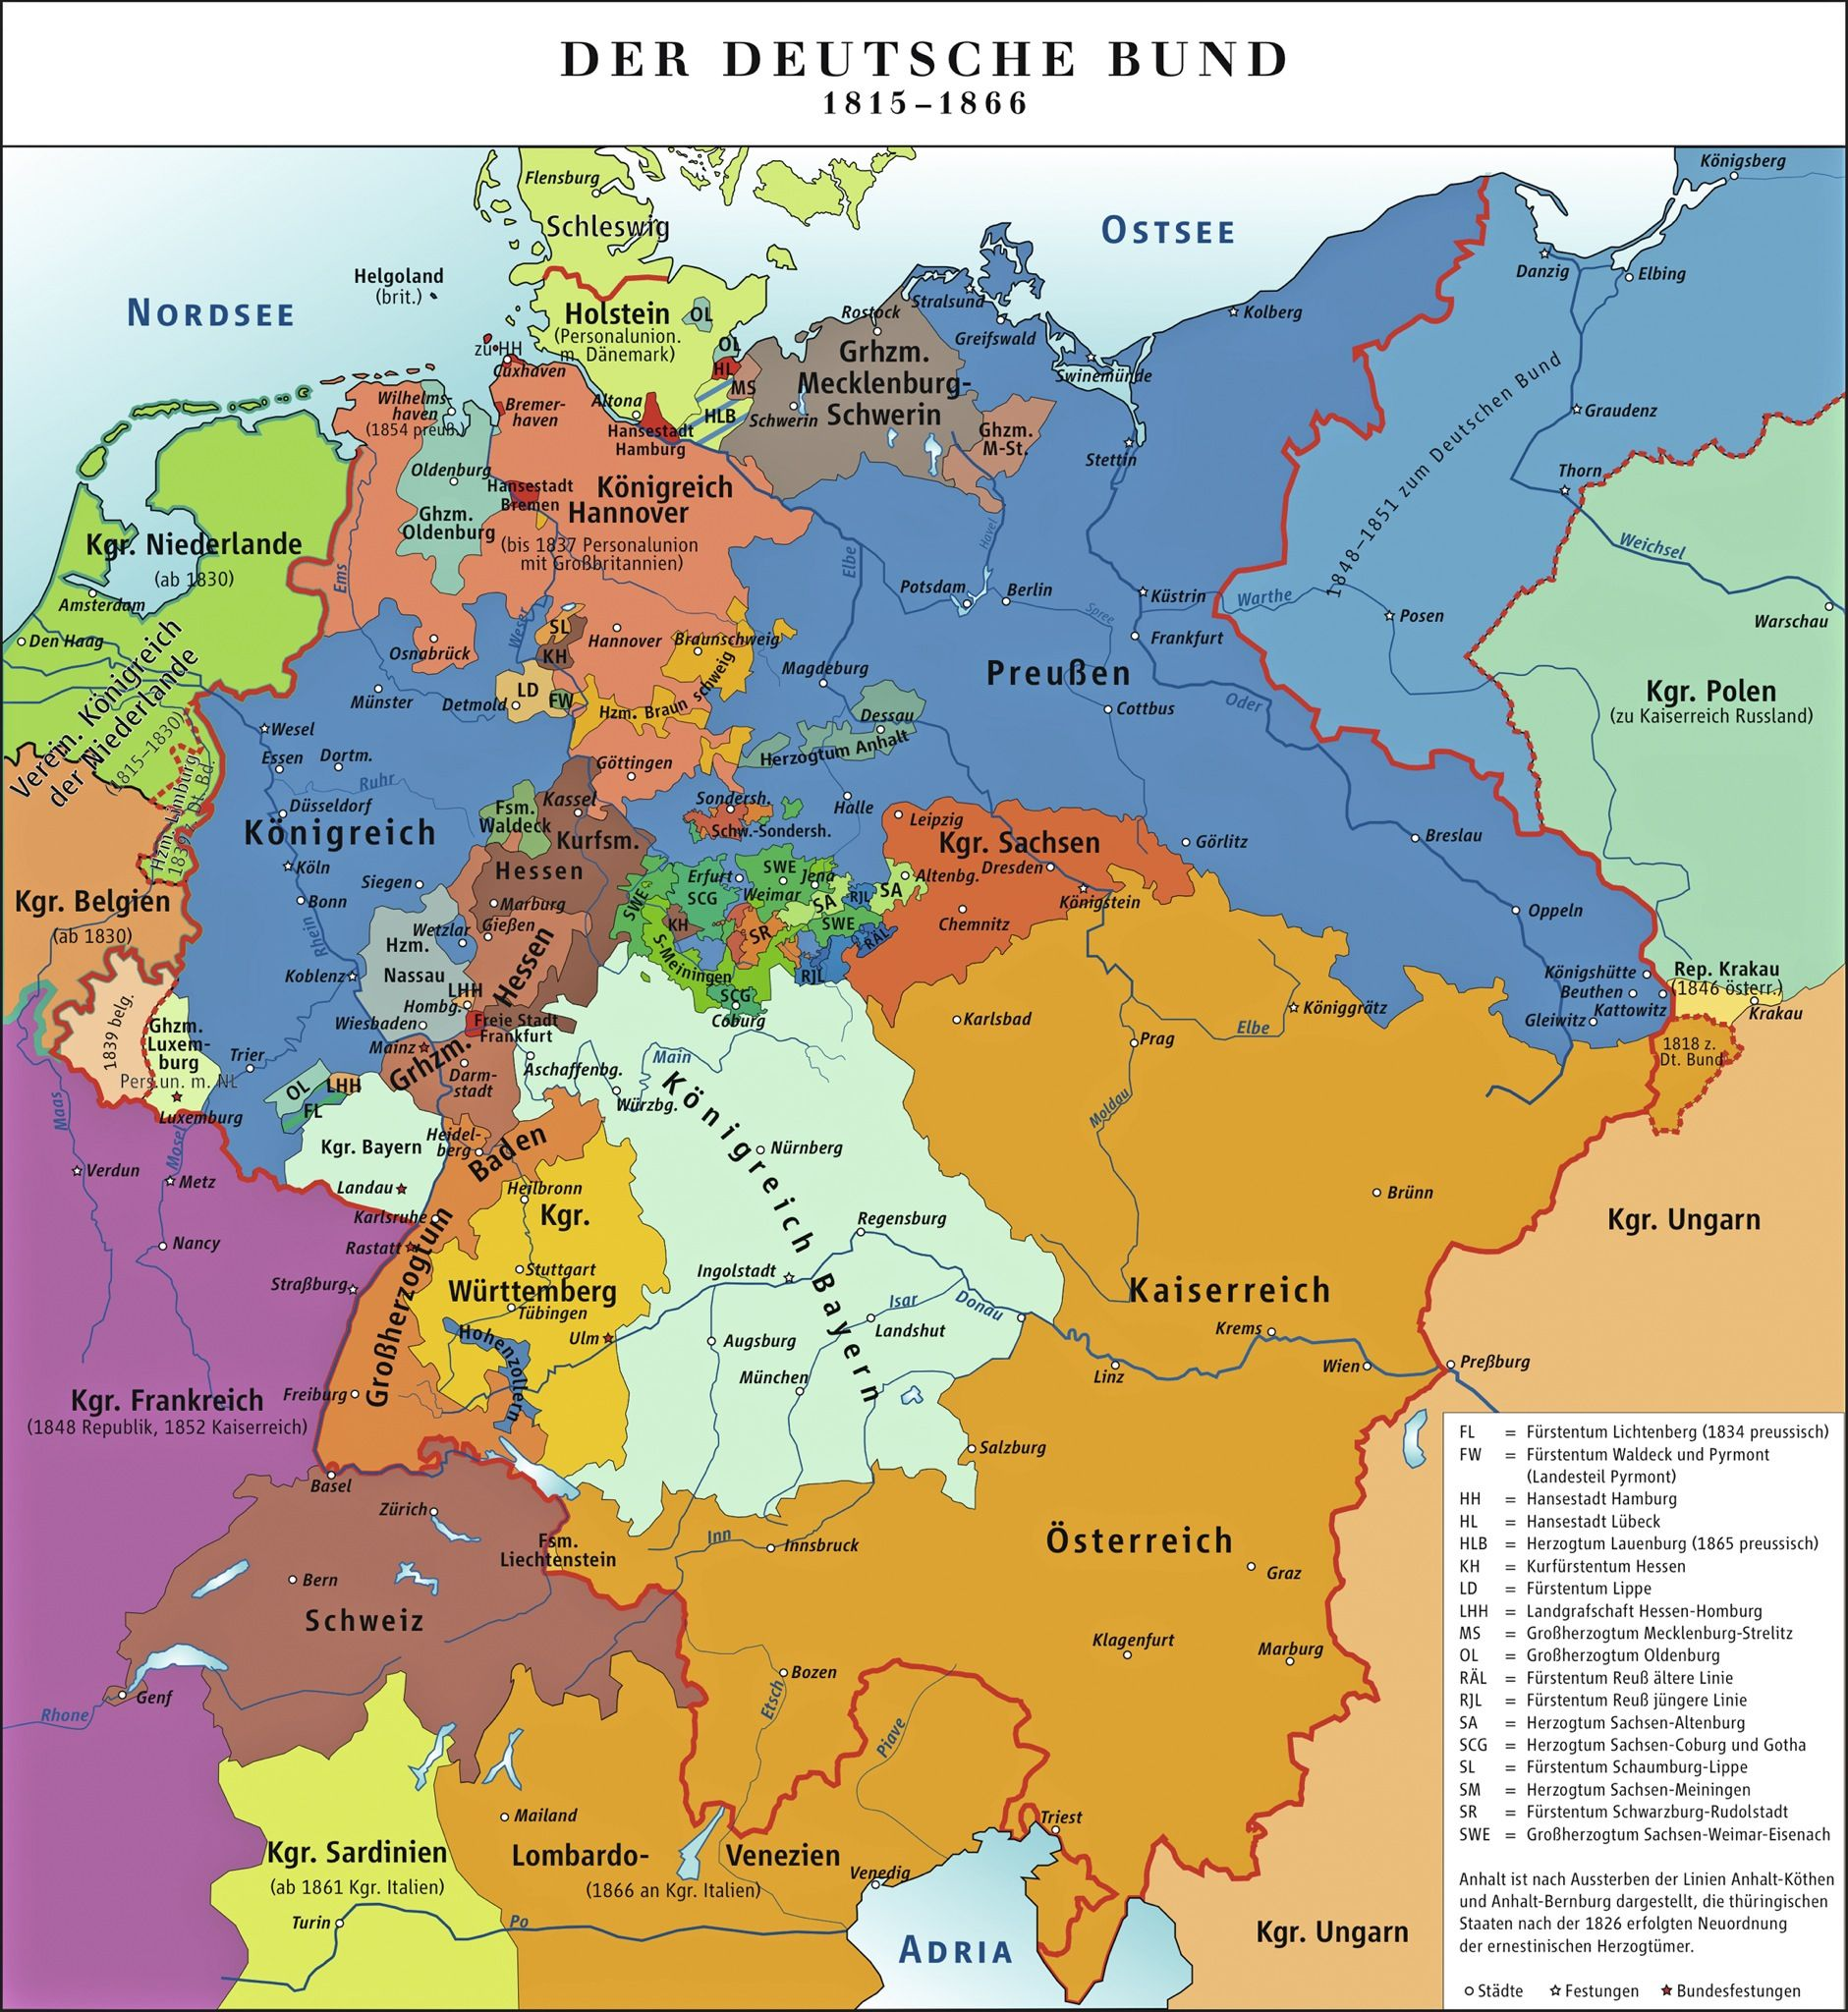 Map Of Germany 1815.The German Confederation 1815 States Duchies And Fiefdoms